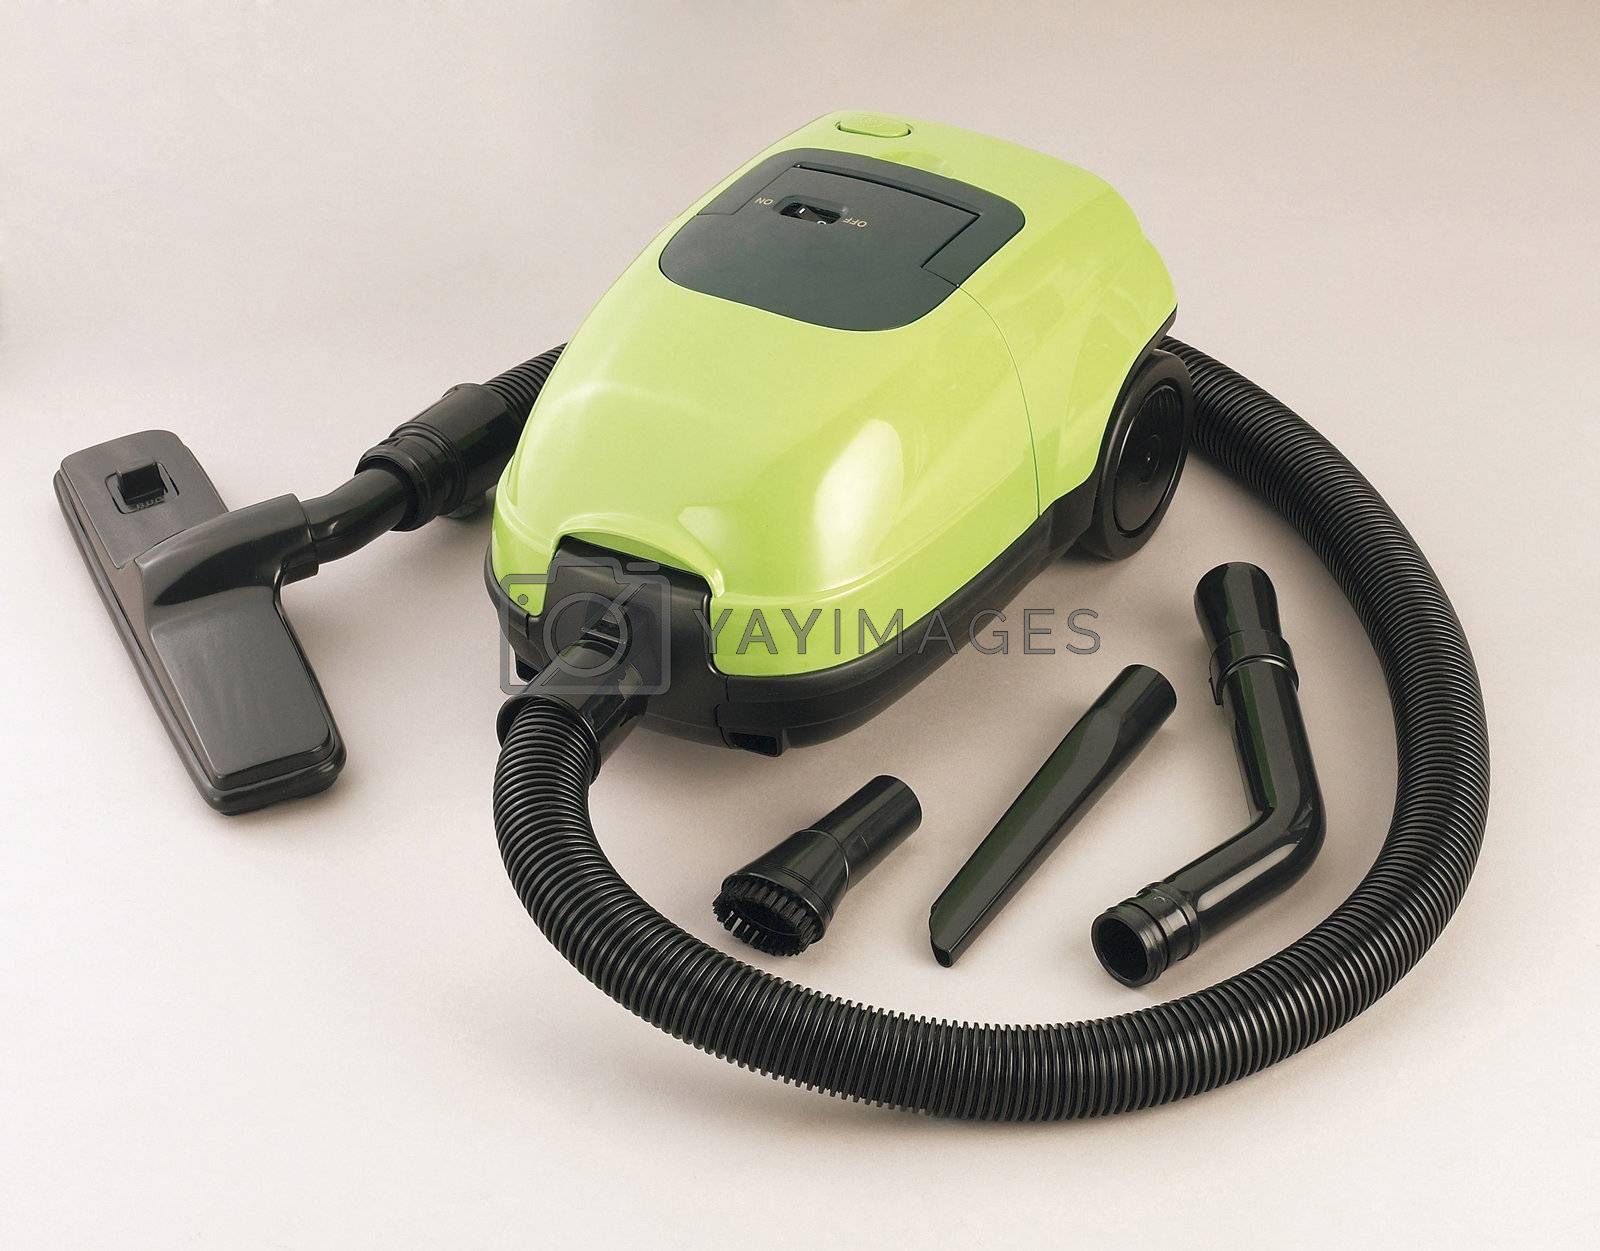 A green vaccum cleaner isolated.